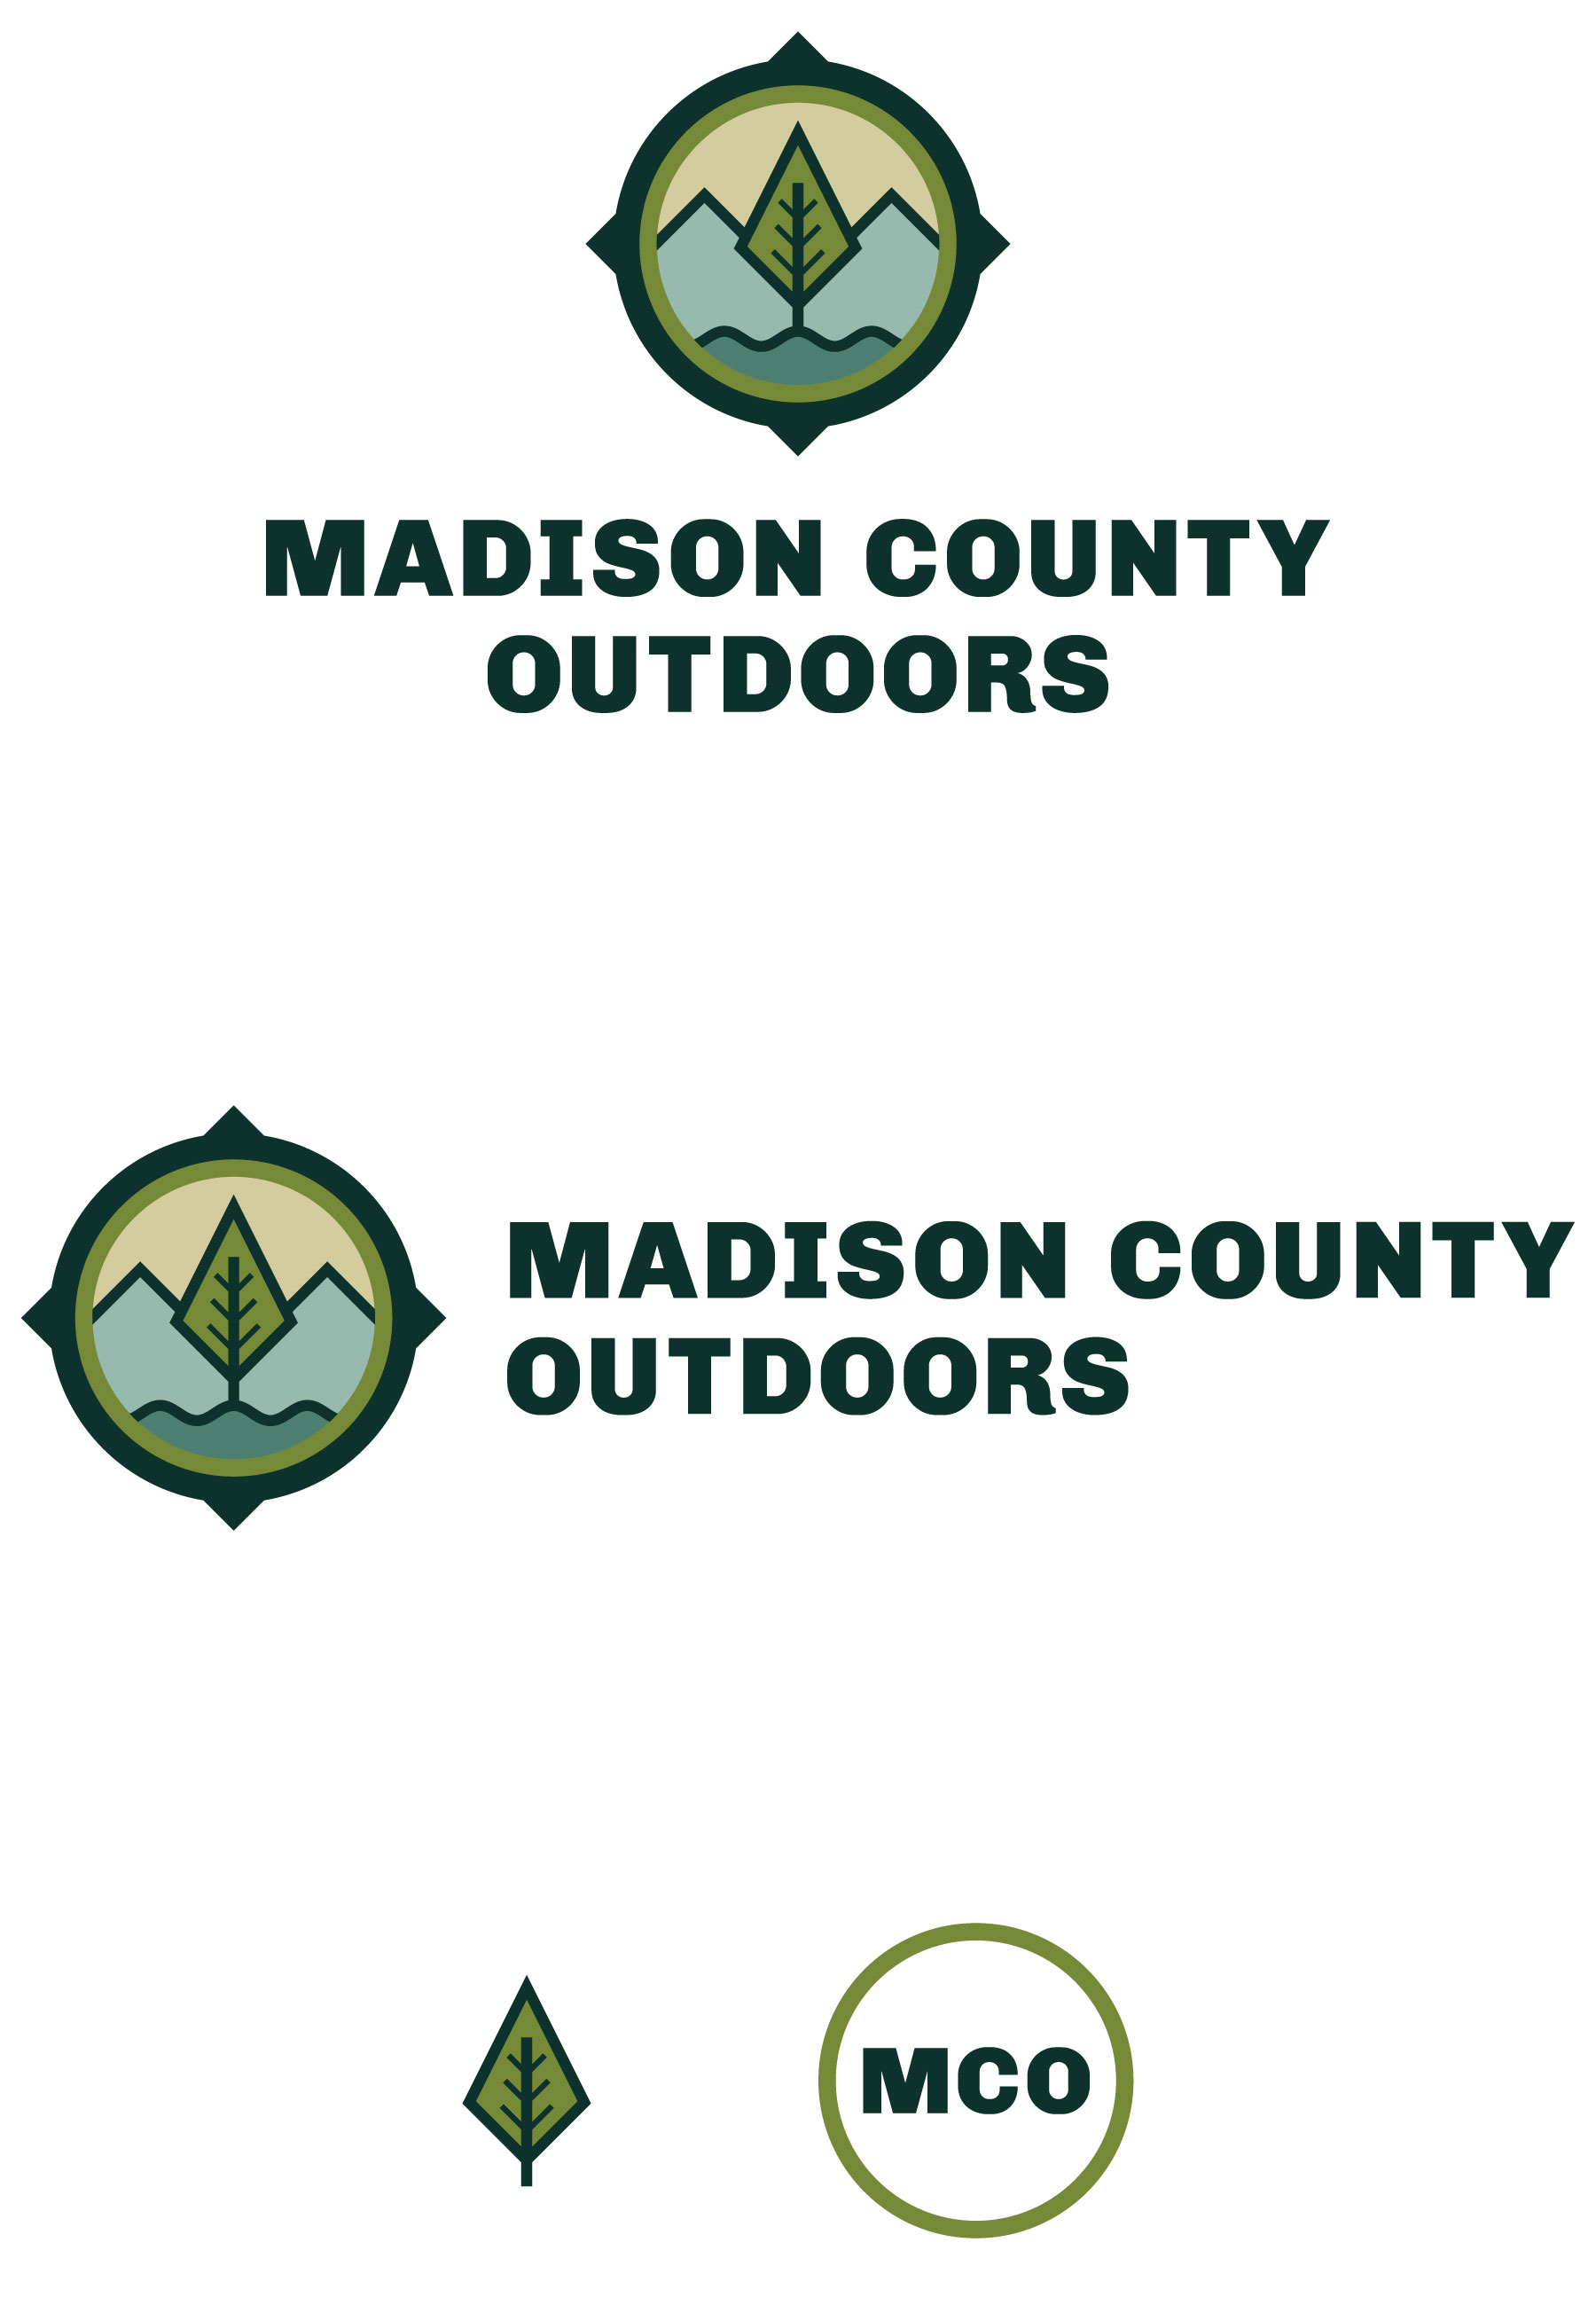 Secondary logos and icons